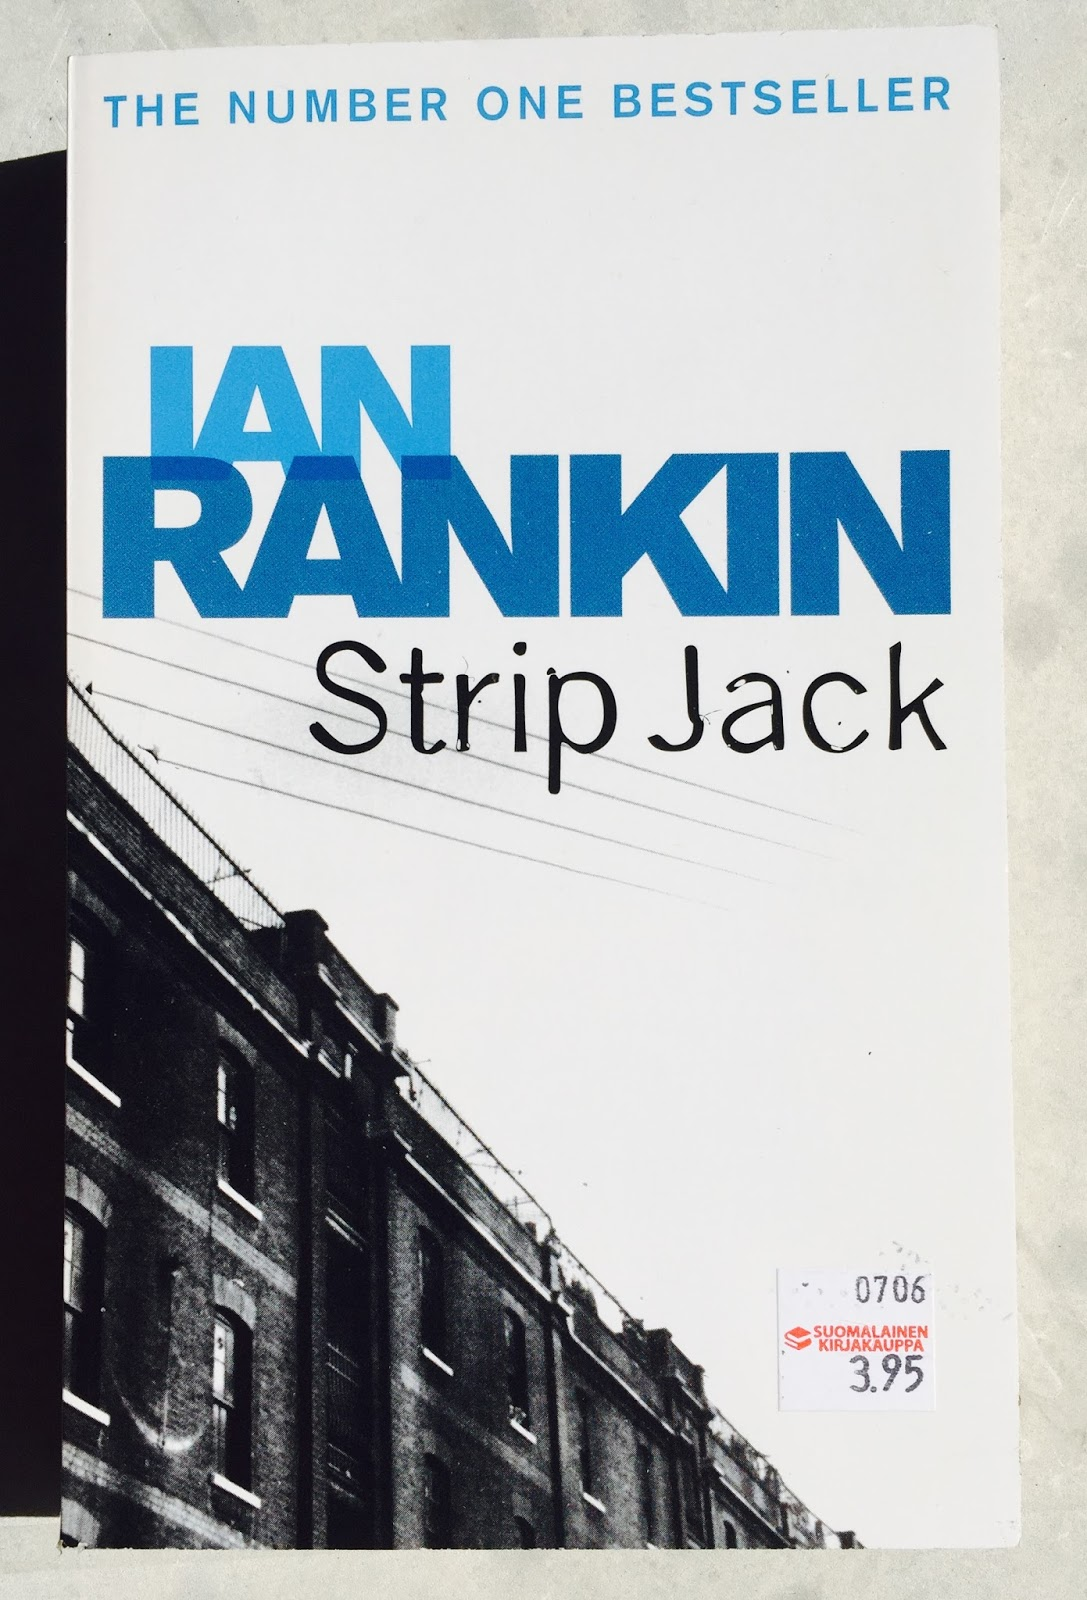 Ian rankin strip jack